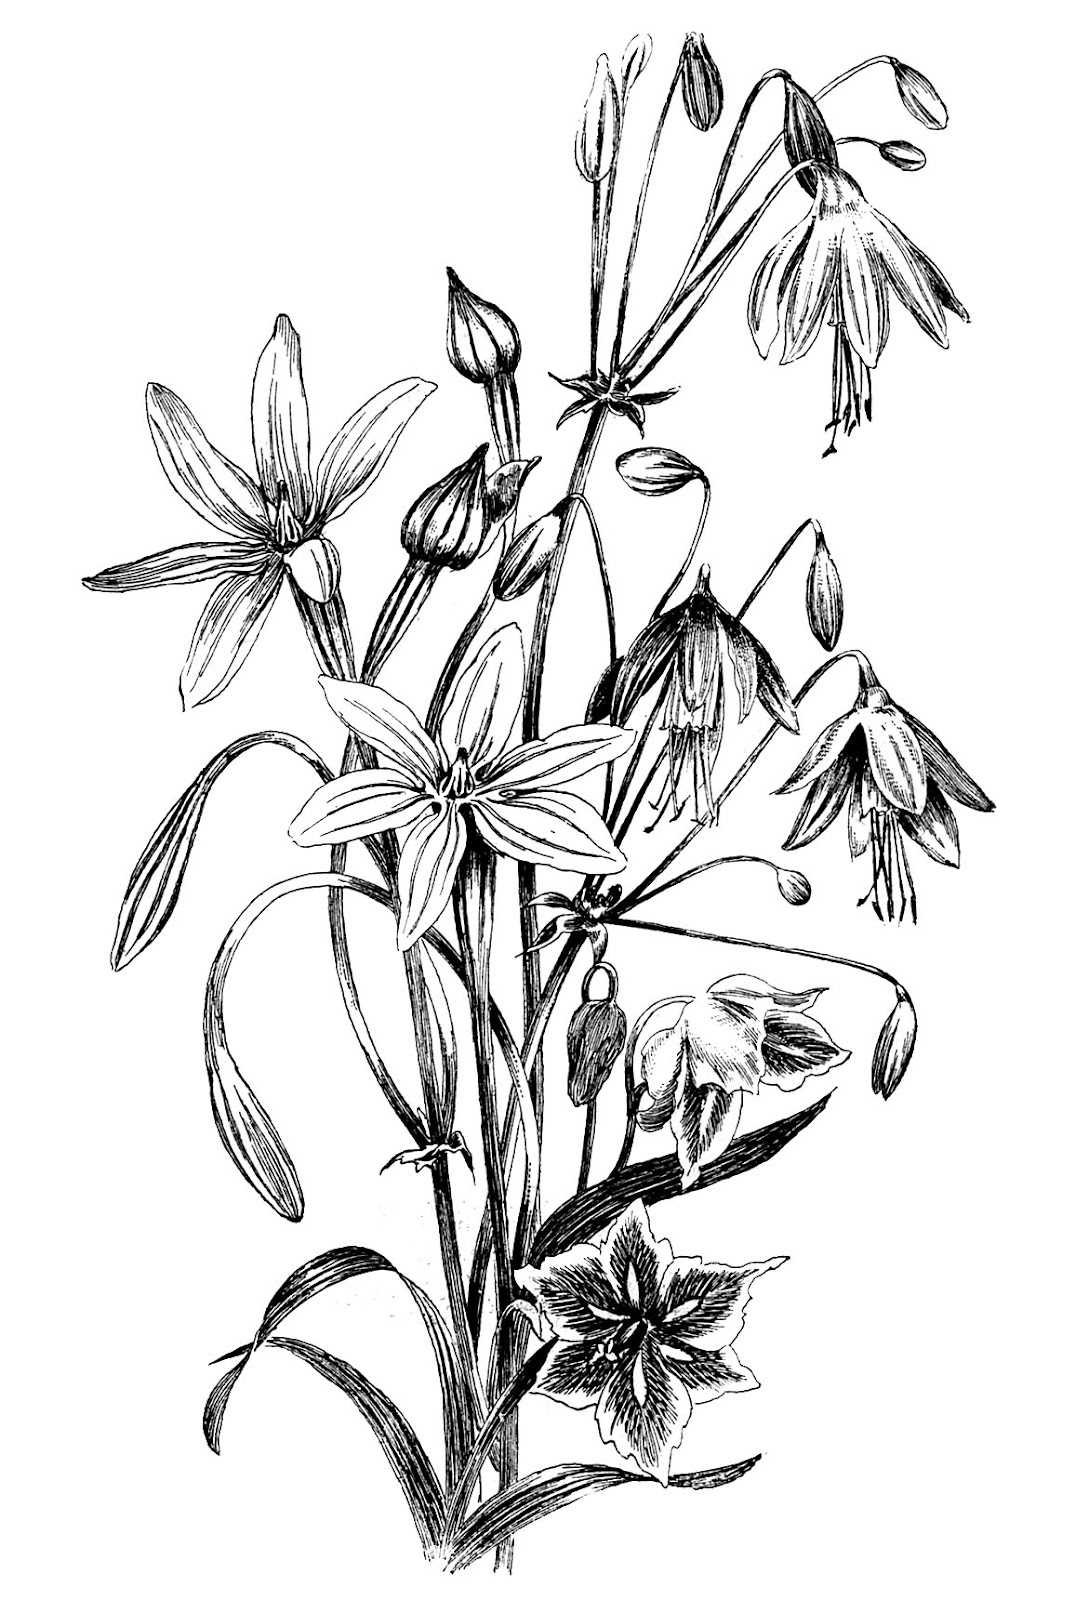 Black and white flower drawings yolarnetonic black and white flower drawings mightylinksfo